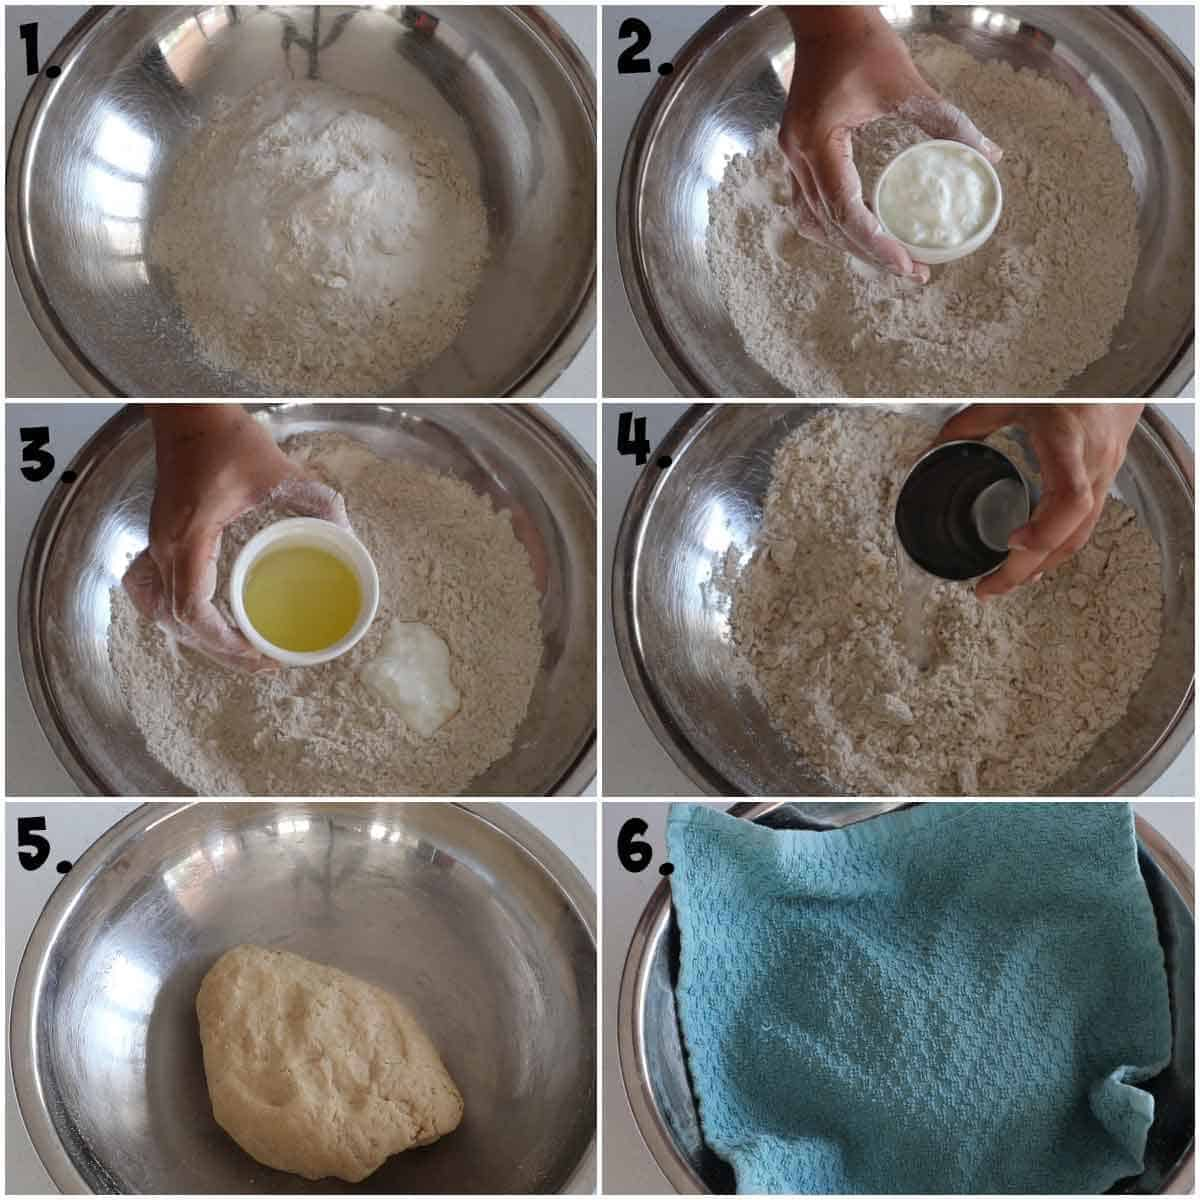 adding flour, baking powder, baking soda, oil, yogurt, and water in a bowl and kneading a dough